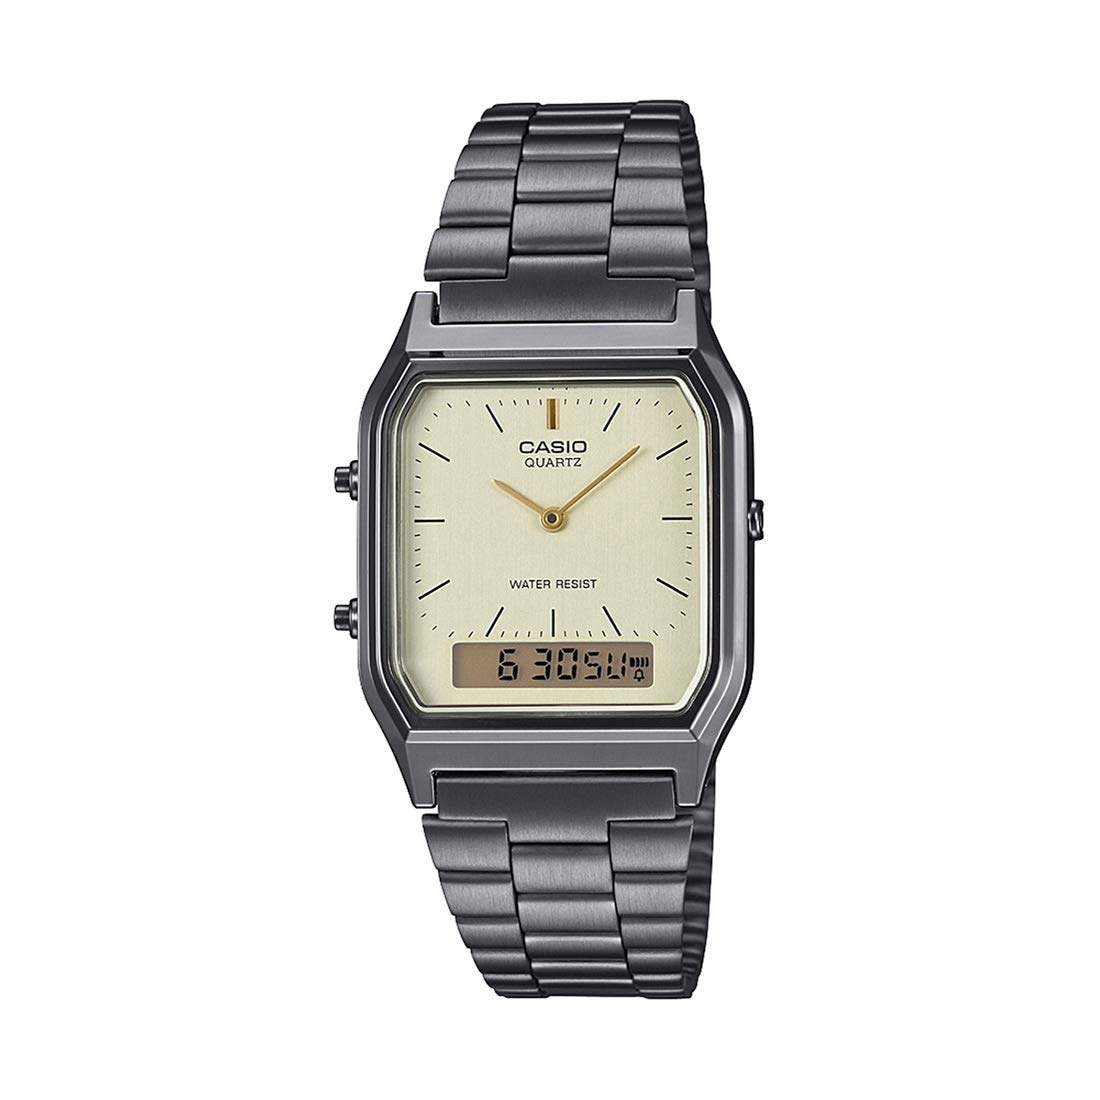 A silver watch with a square cream coloured dial